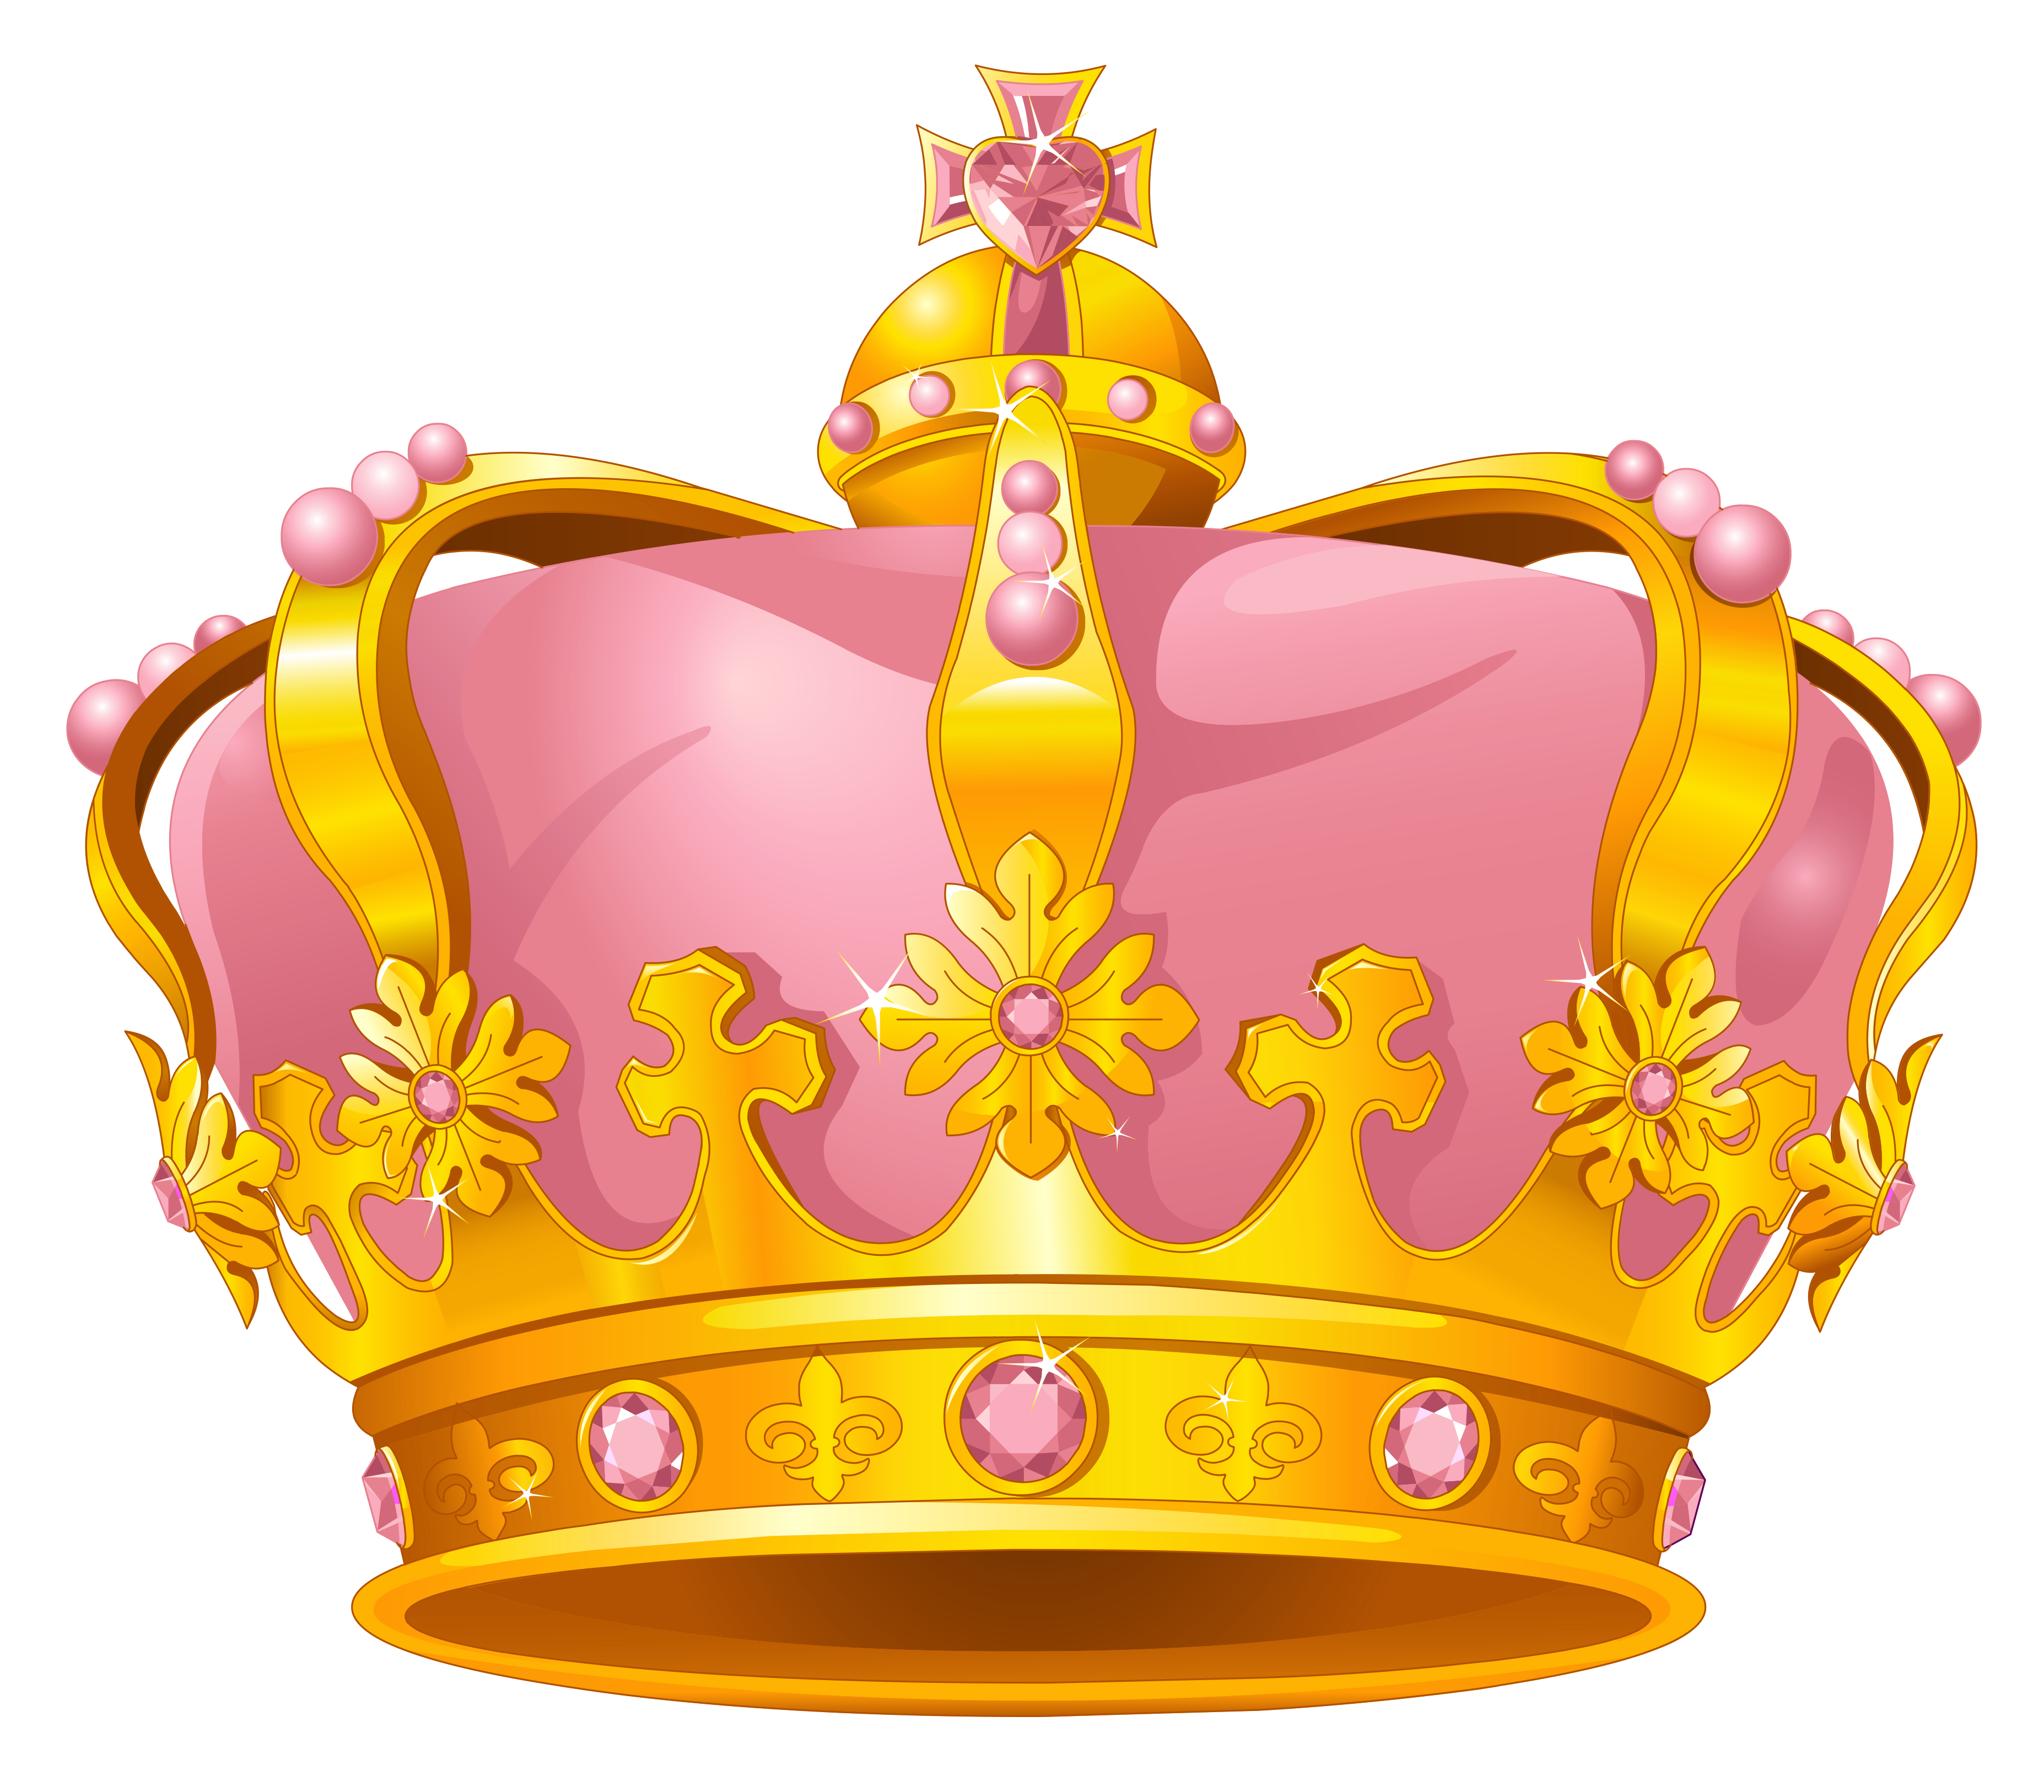 Crown PNG images free download.